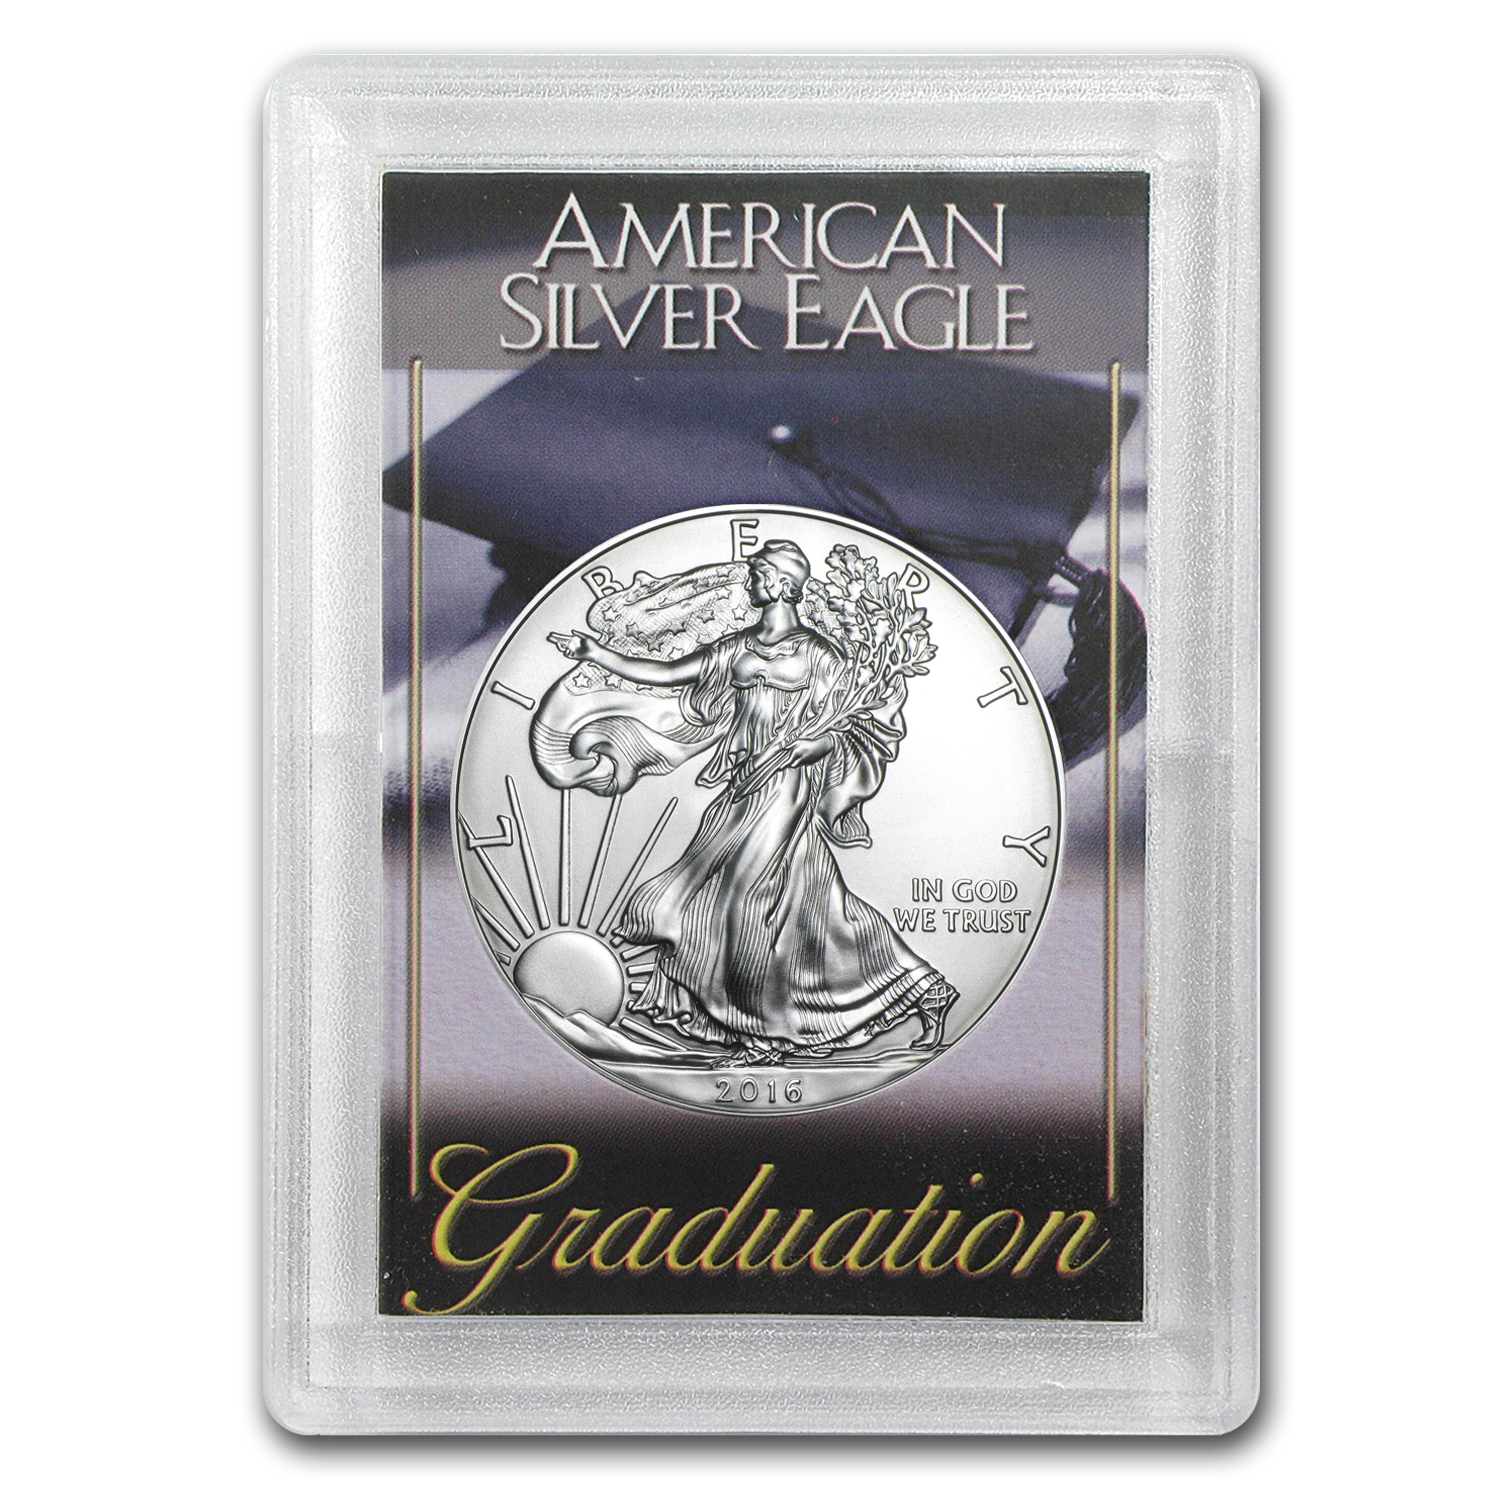 2016 1 oz Silver American Eagle BU (Graduation, Harris Holder)